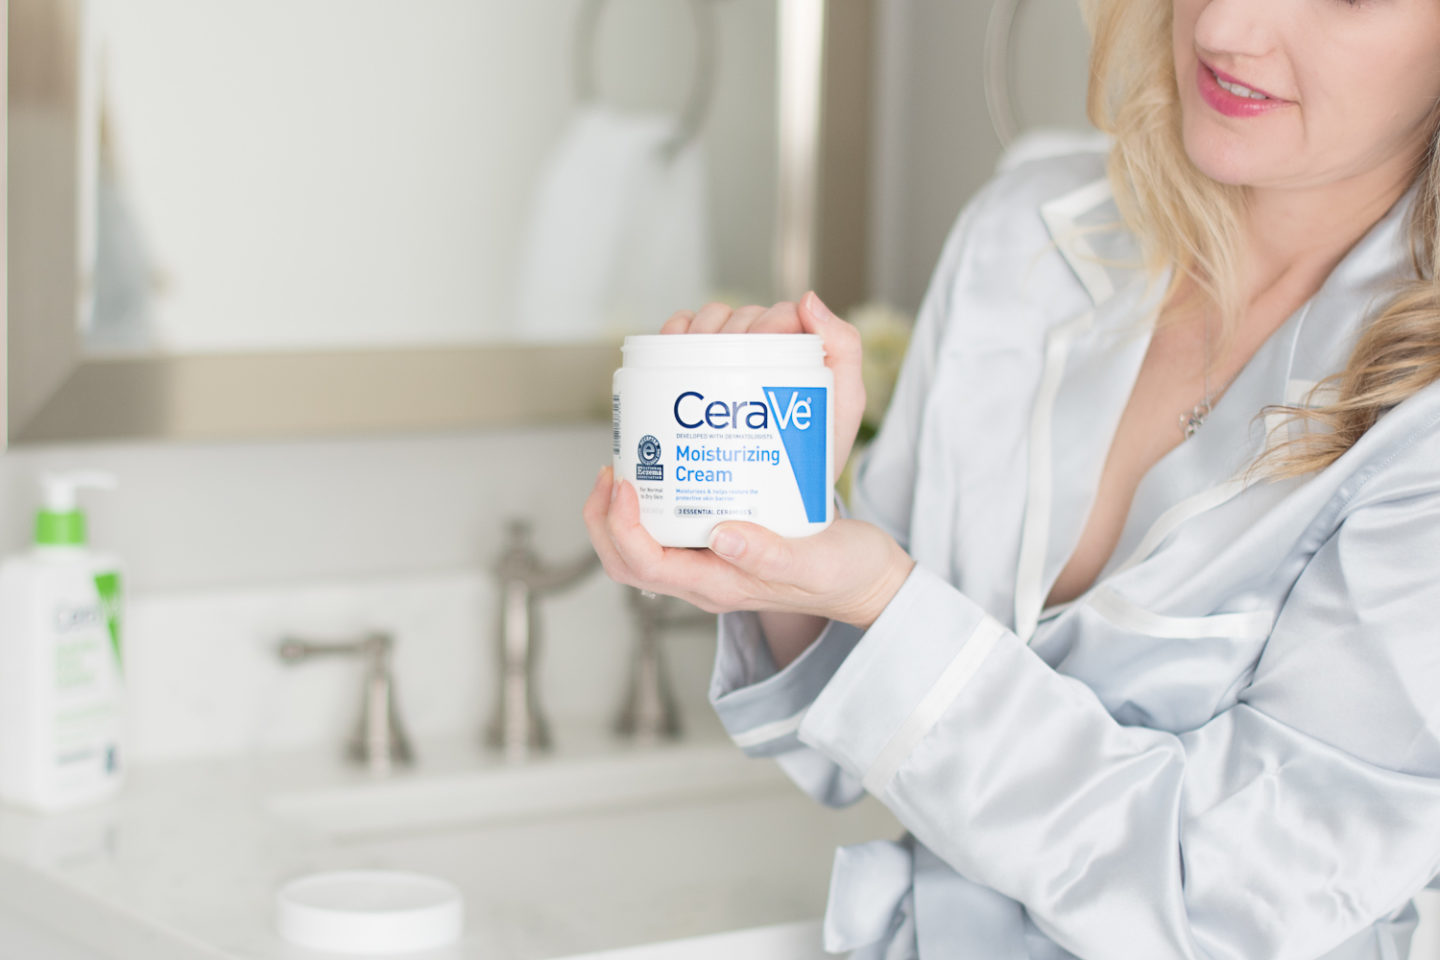 Michigan Petite Fashion and Lifestyle Blog | CeraVe Hydrating Facial Cleanser | CeraVe Moisturizing Cream